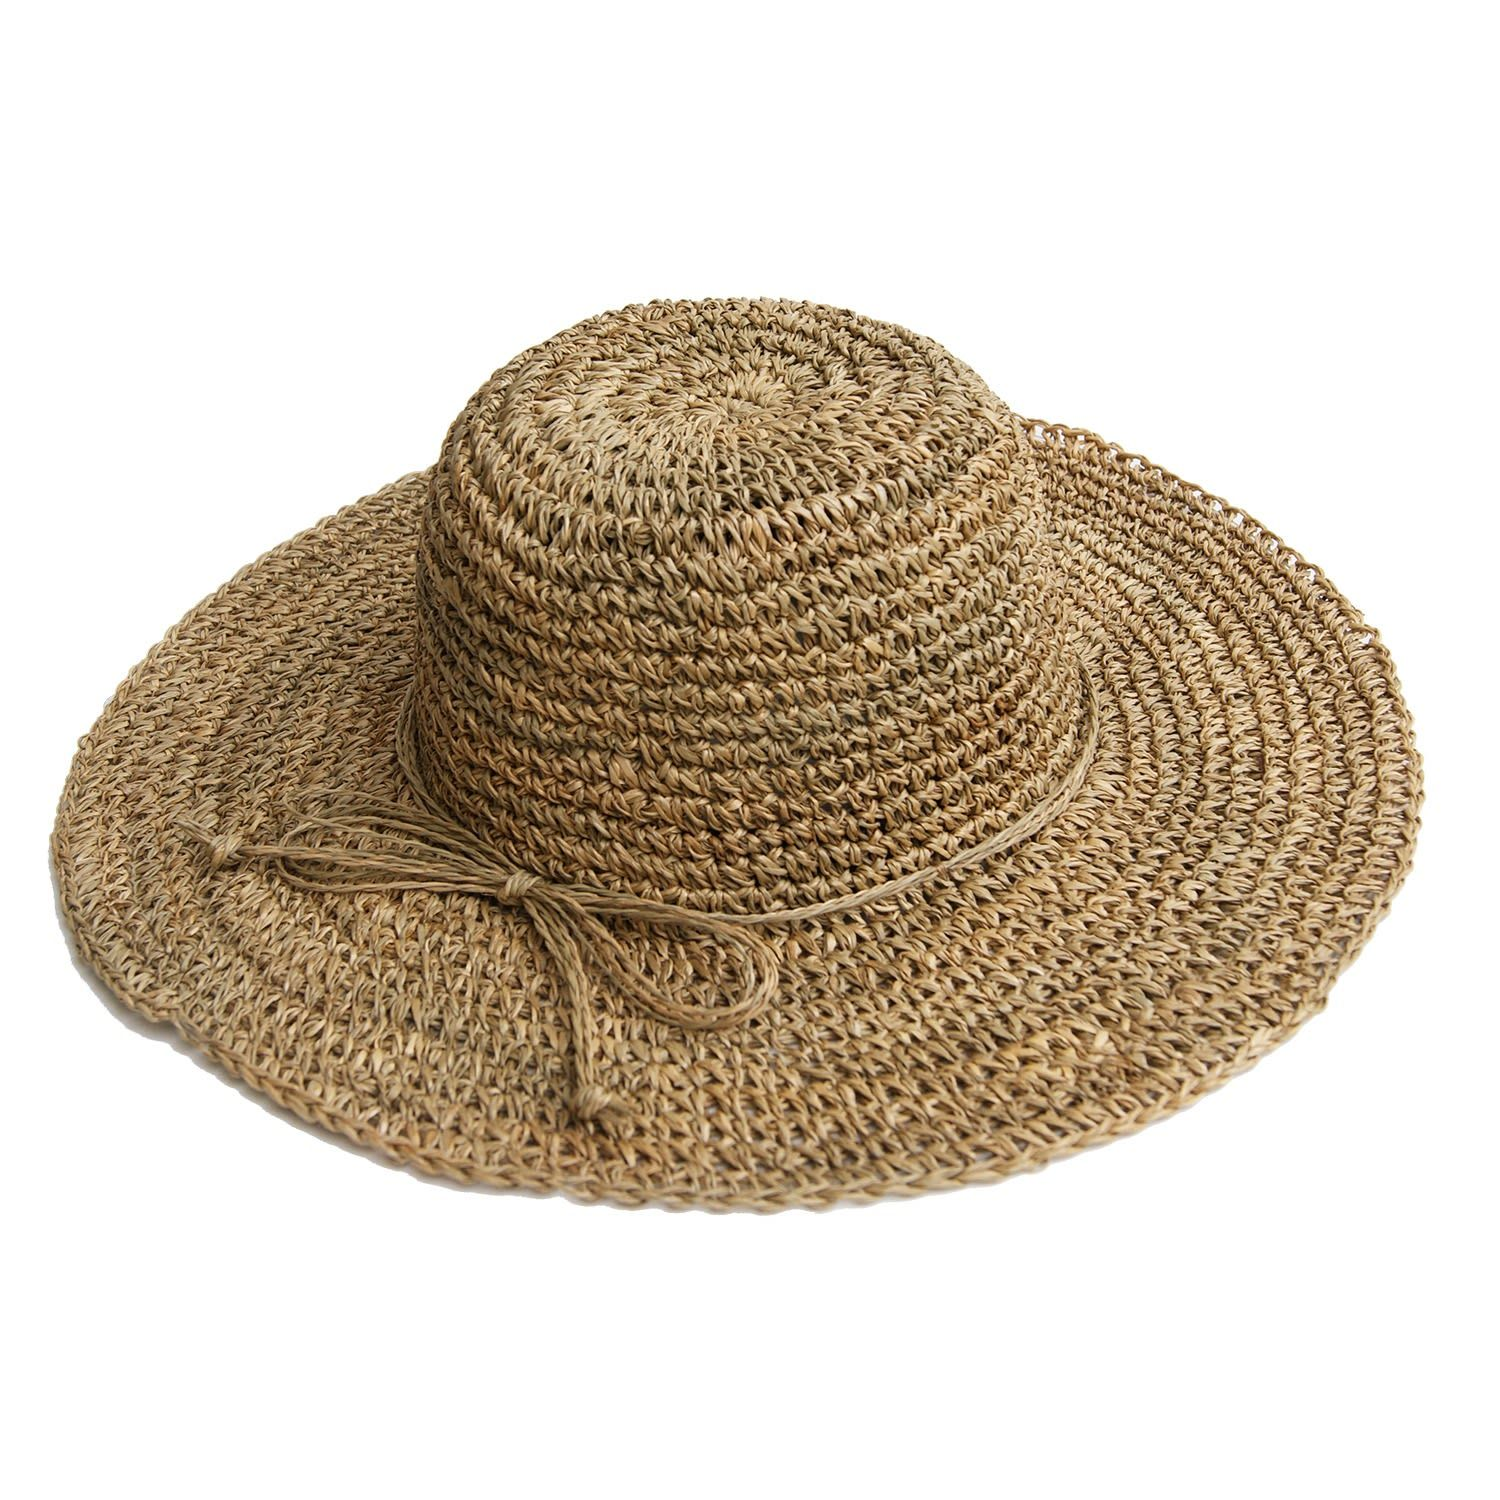 b5d7af10a0936 Justine Hats - Wide Brim Straw Hat in 2019